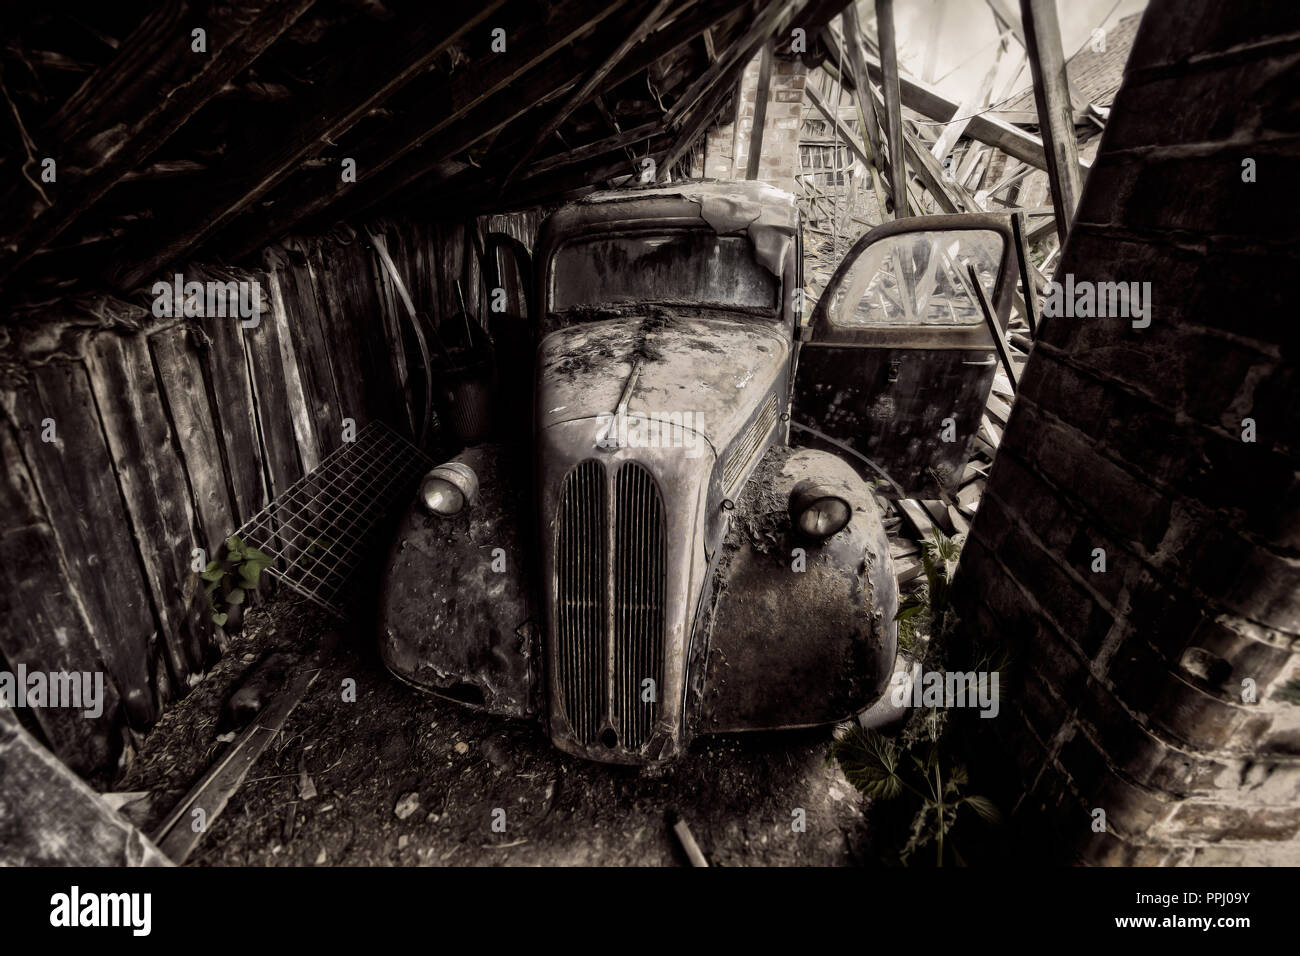 Abandoned old rusty classic car hidden in barn - Stock Image